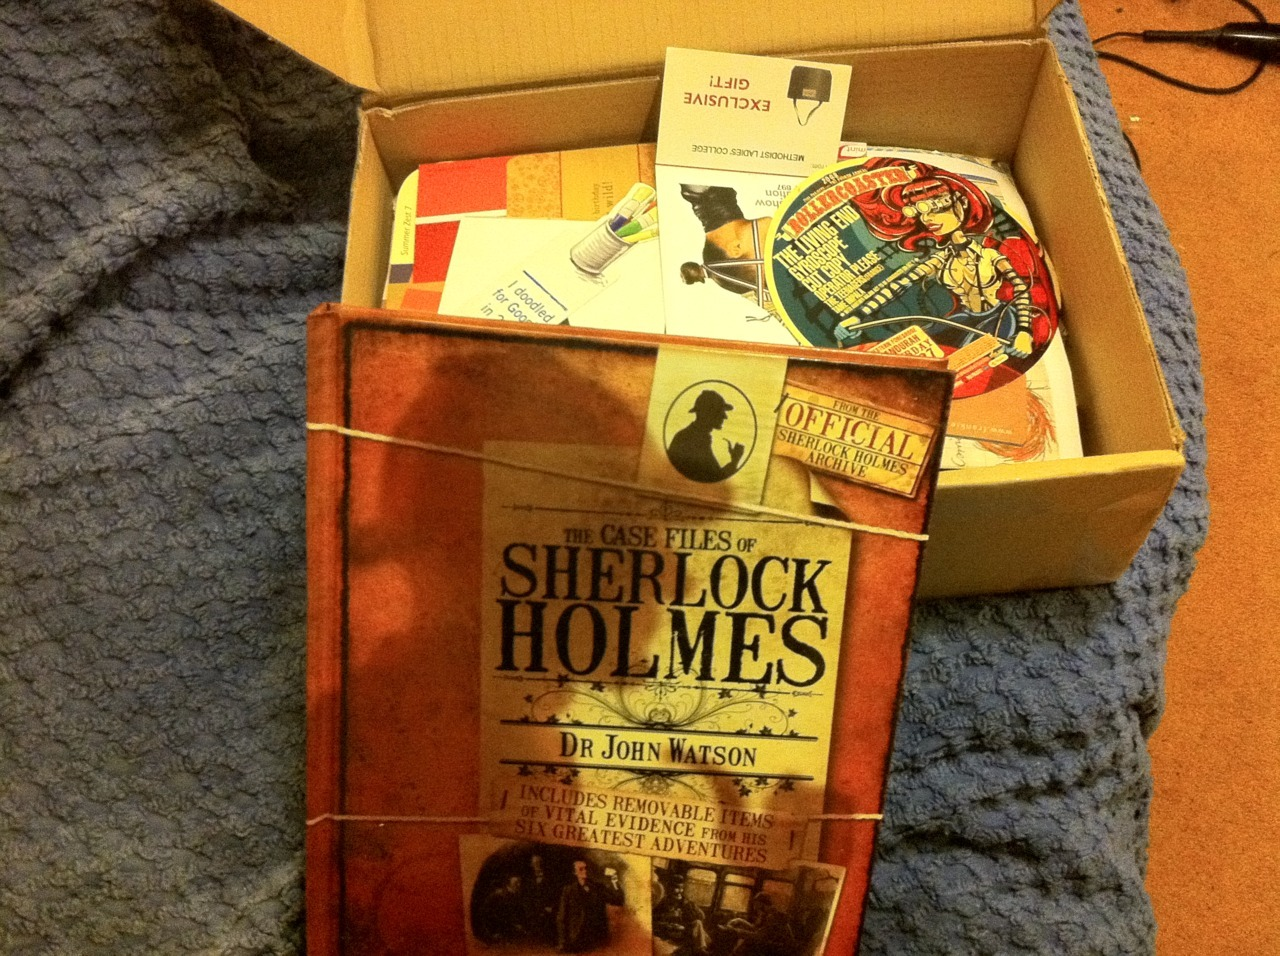 My mum is the best mum because she finds Sherlock Holmes books in shitty supermarkets and buys them for me and puts them in a box with a bunch of cool shit for my visual diary and SENDS THE BOX to me ALL THE WAY FROM PERTH TO LONDON and even writes a nice little letter inside and that is why my mum is the best.